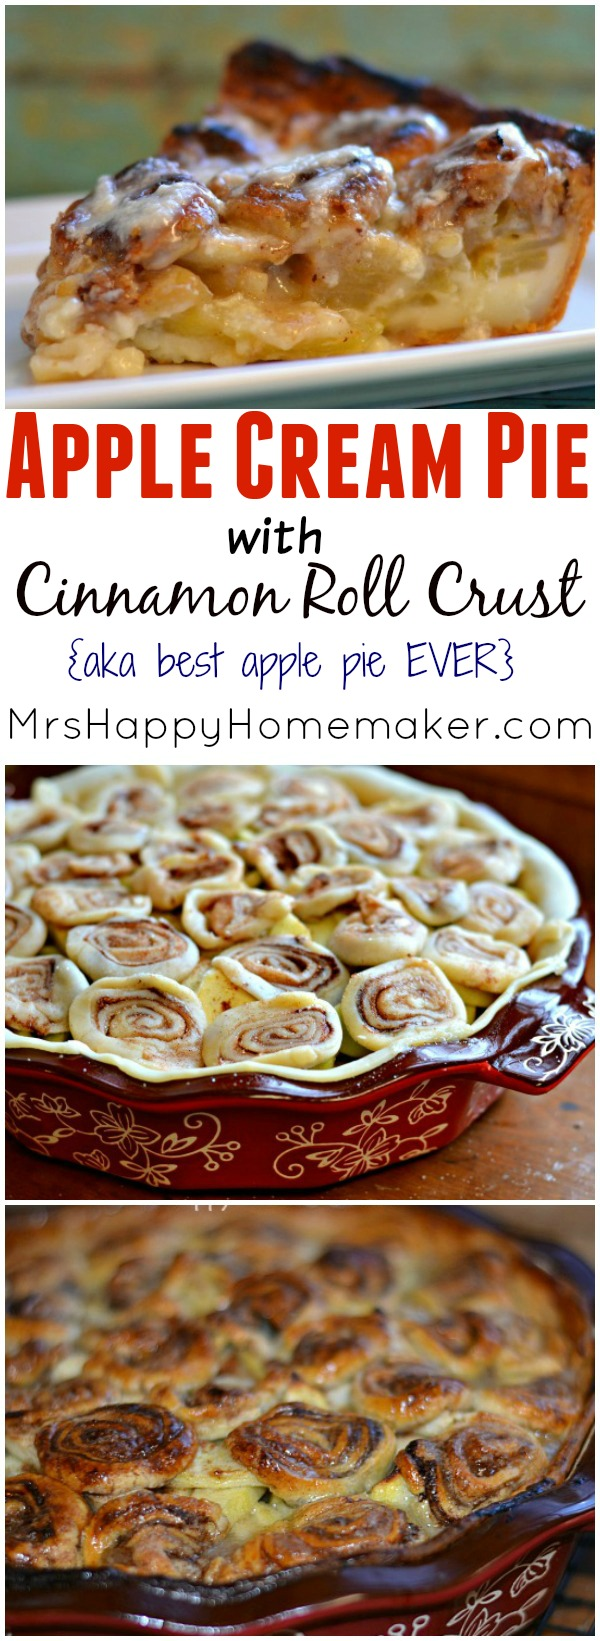 Apple Cream Pie with Cinnamon Roll Crust aka the BEST apple pie you've EVER had!